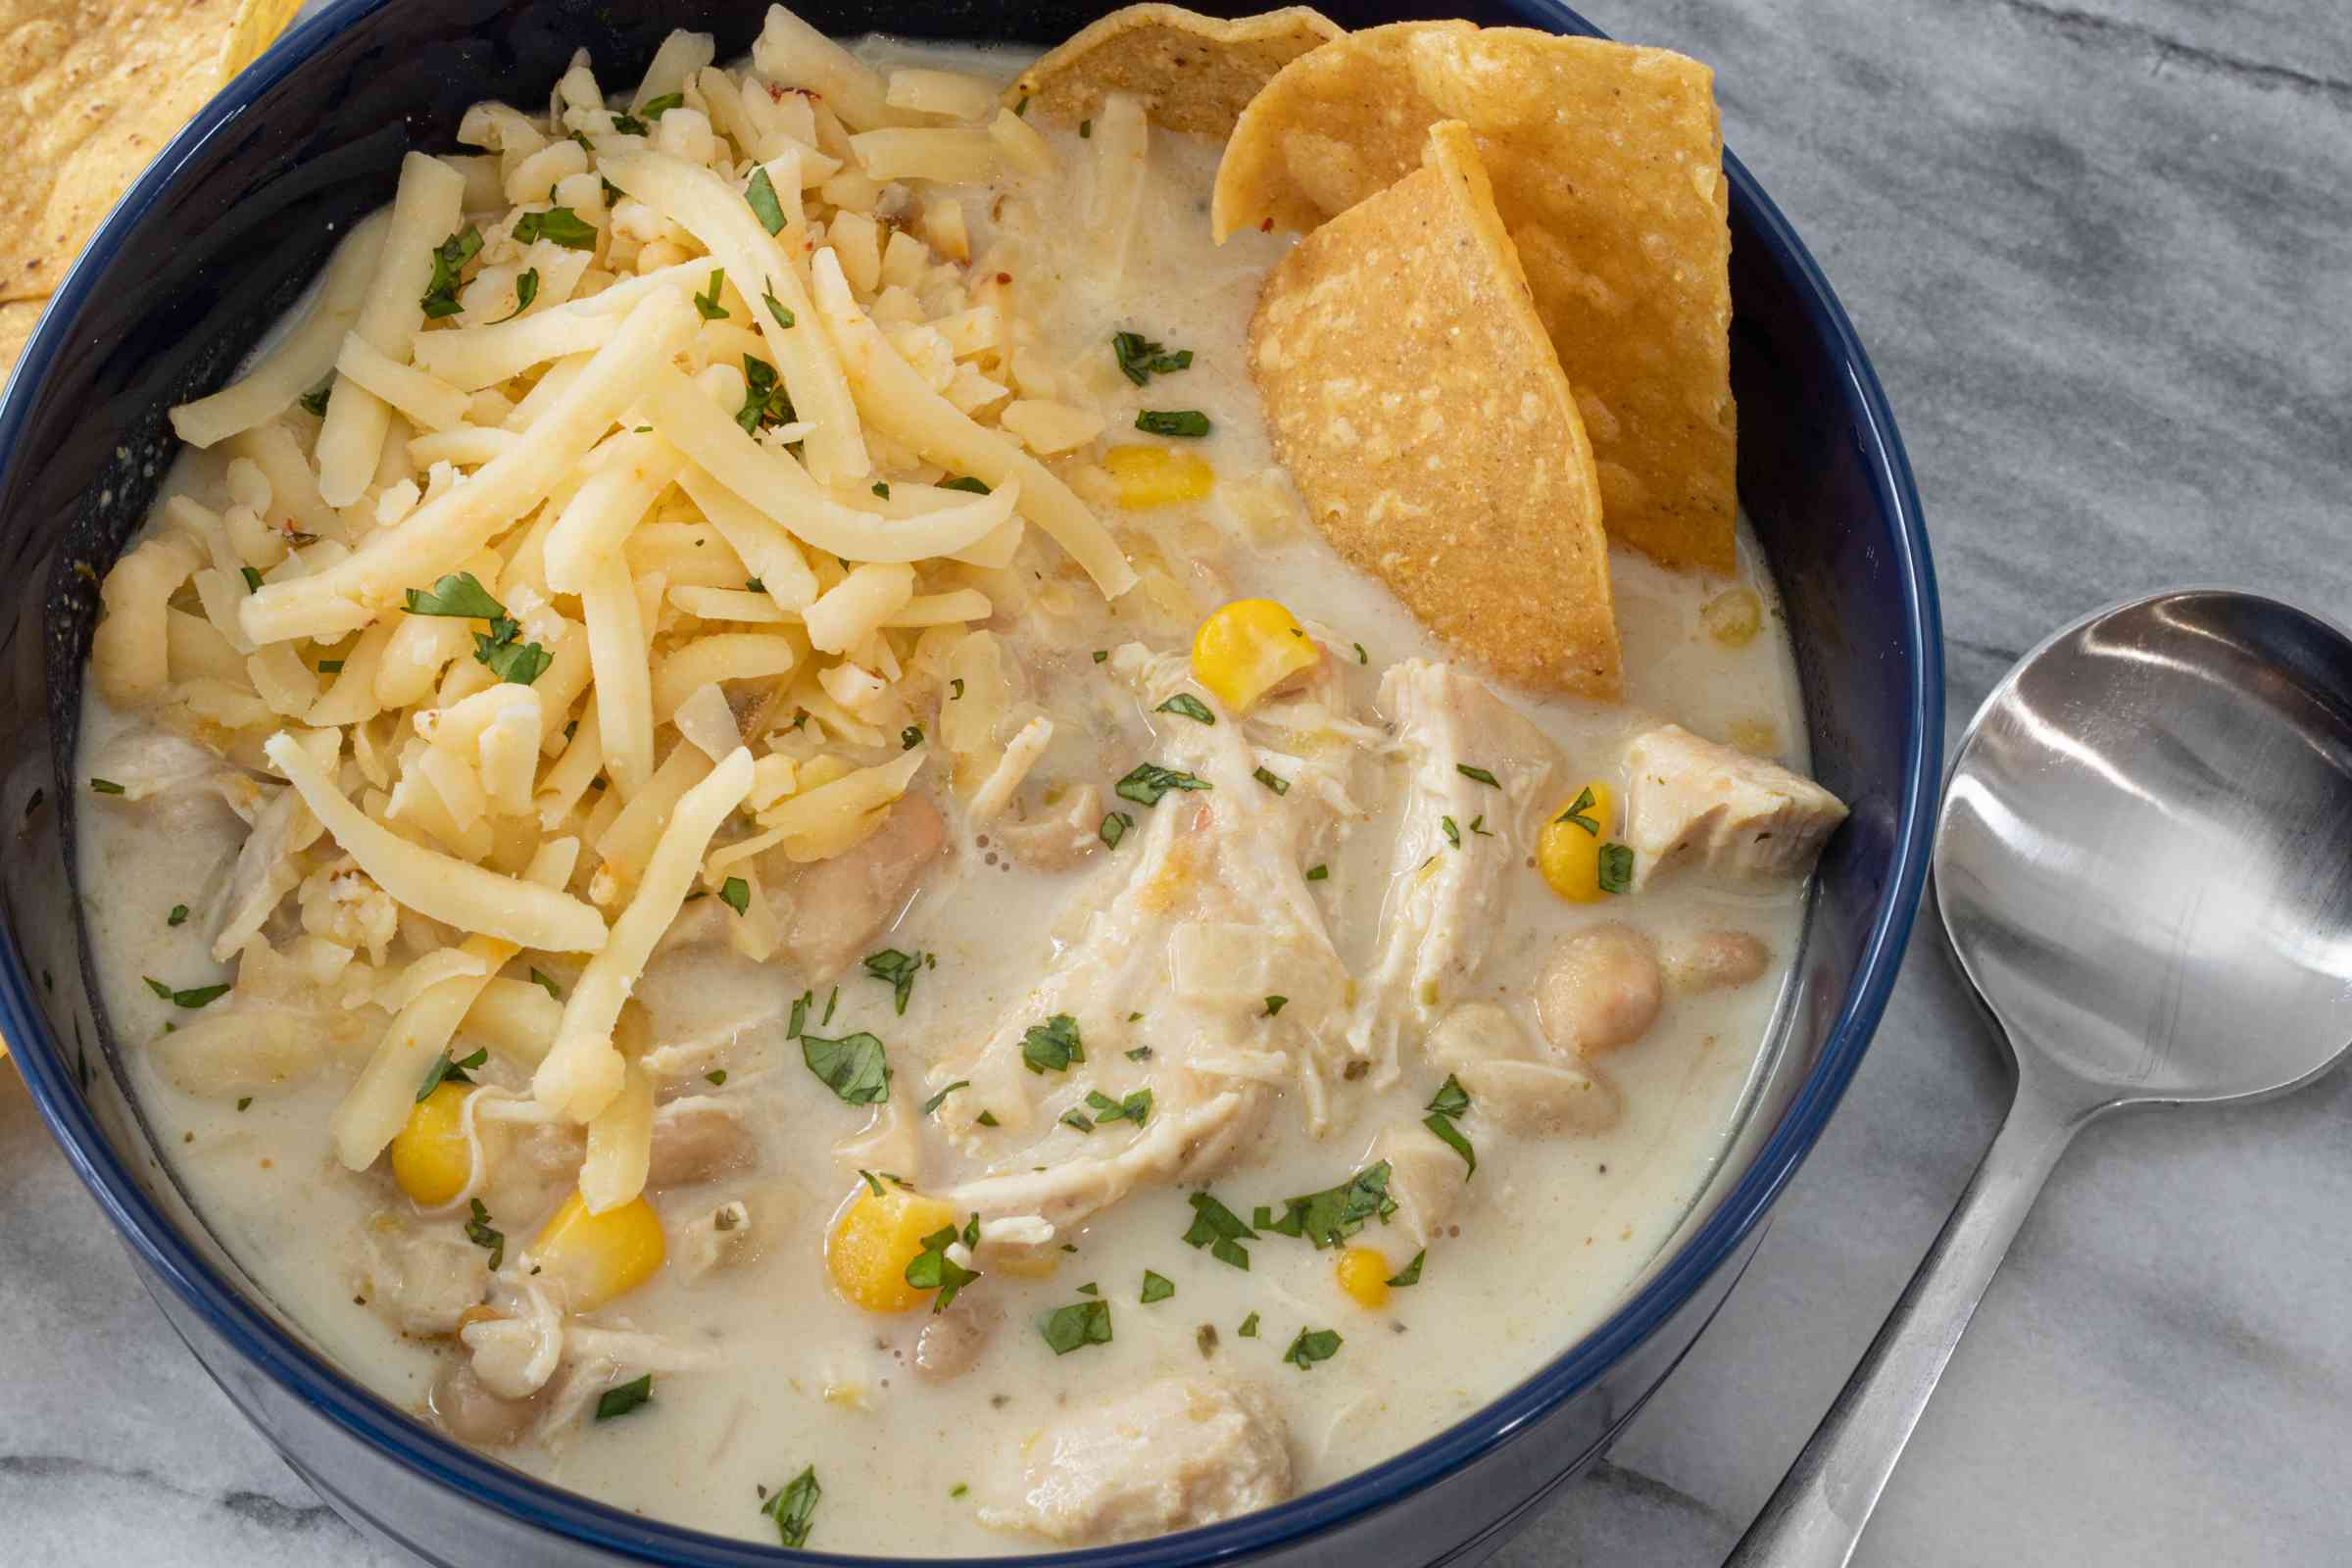 bowl of white chicken chili with extra cheese, cilantro, and tortilla chips